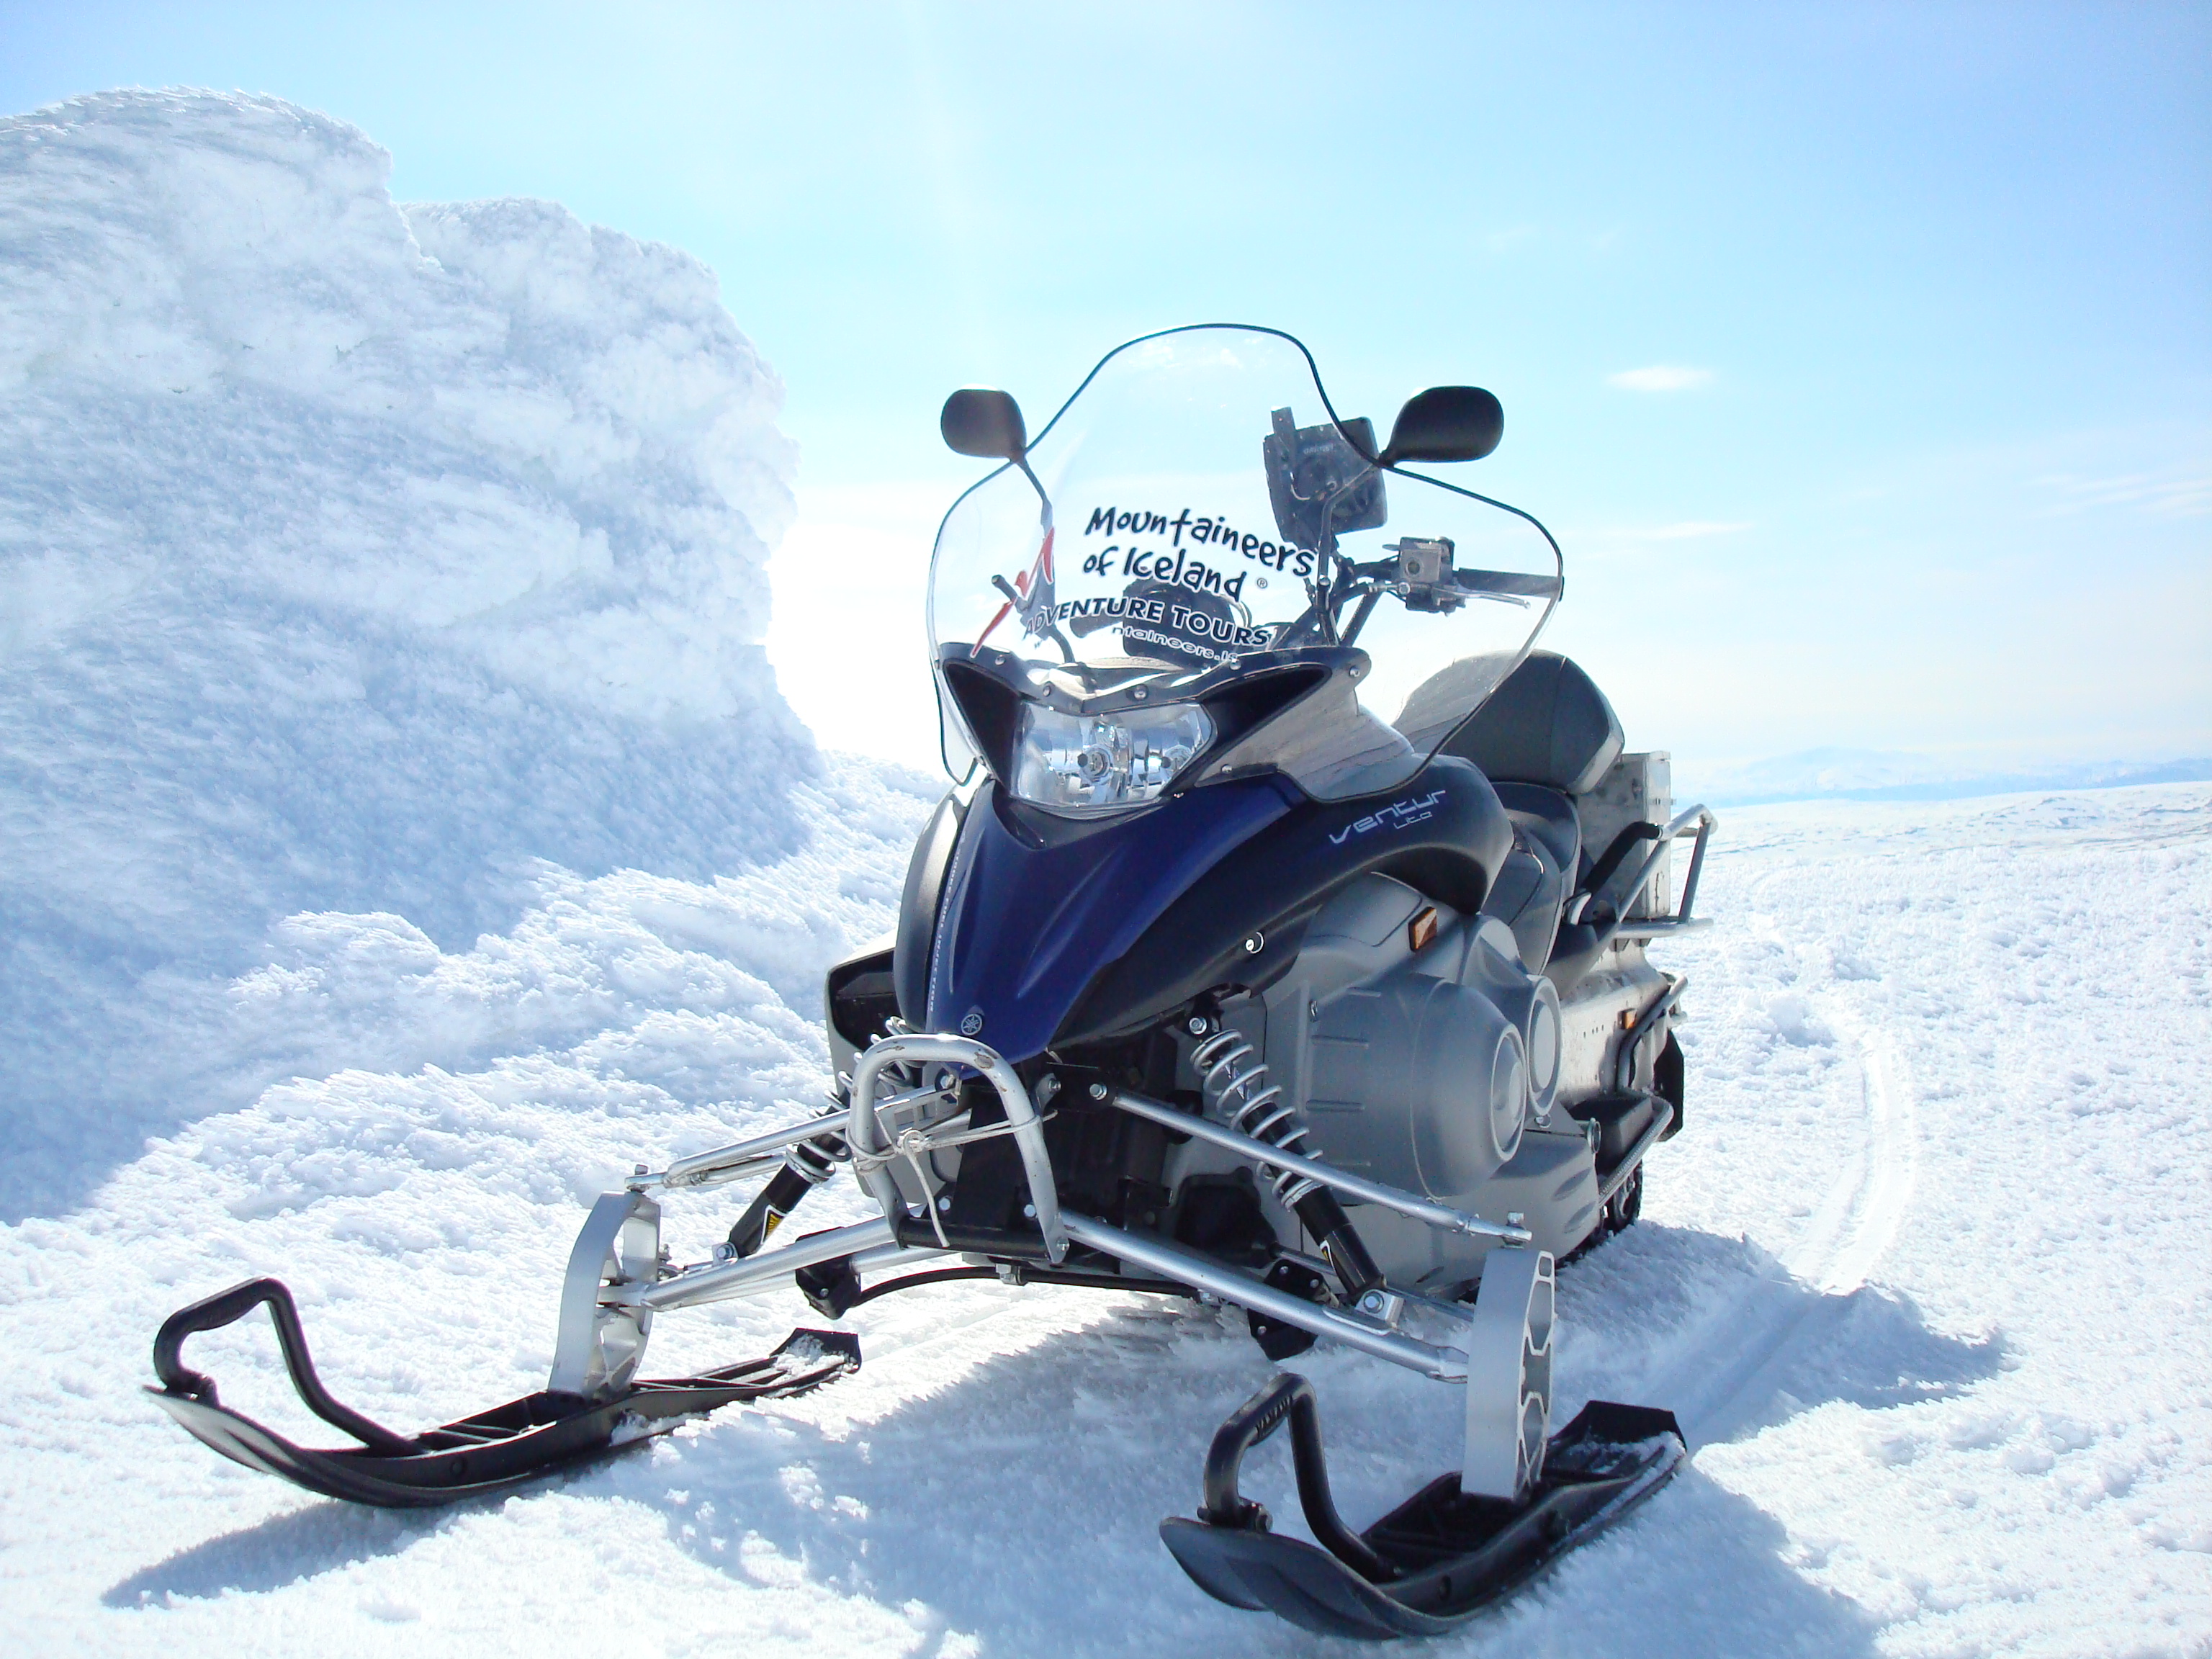 Snowmobile Adventure At Langjokull Glacier Guide To Iceland - This is what happens when you fly a snowmobile off a cliff